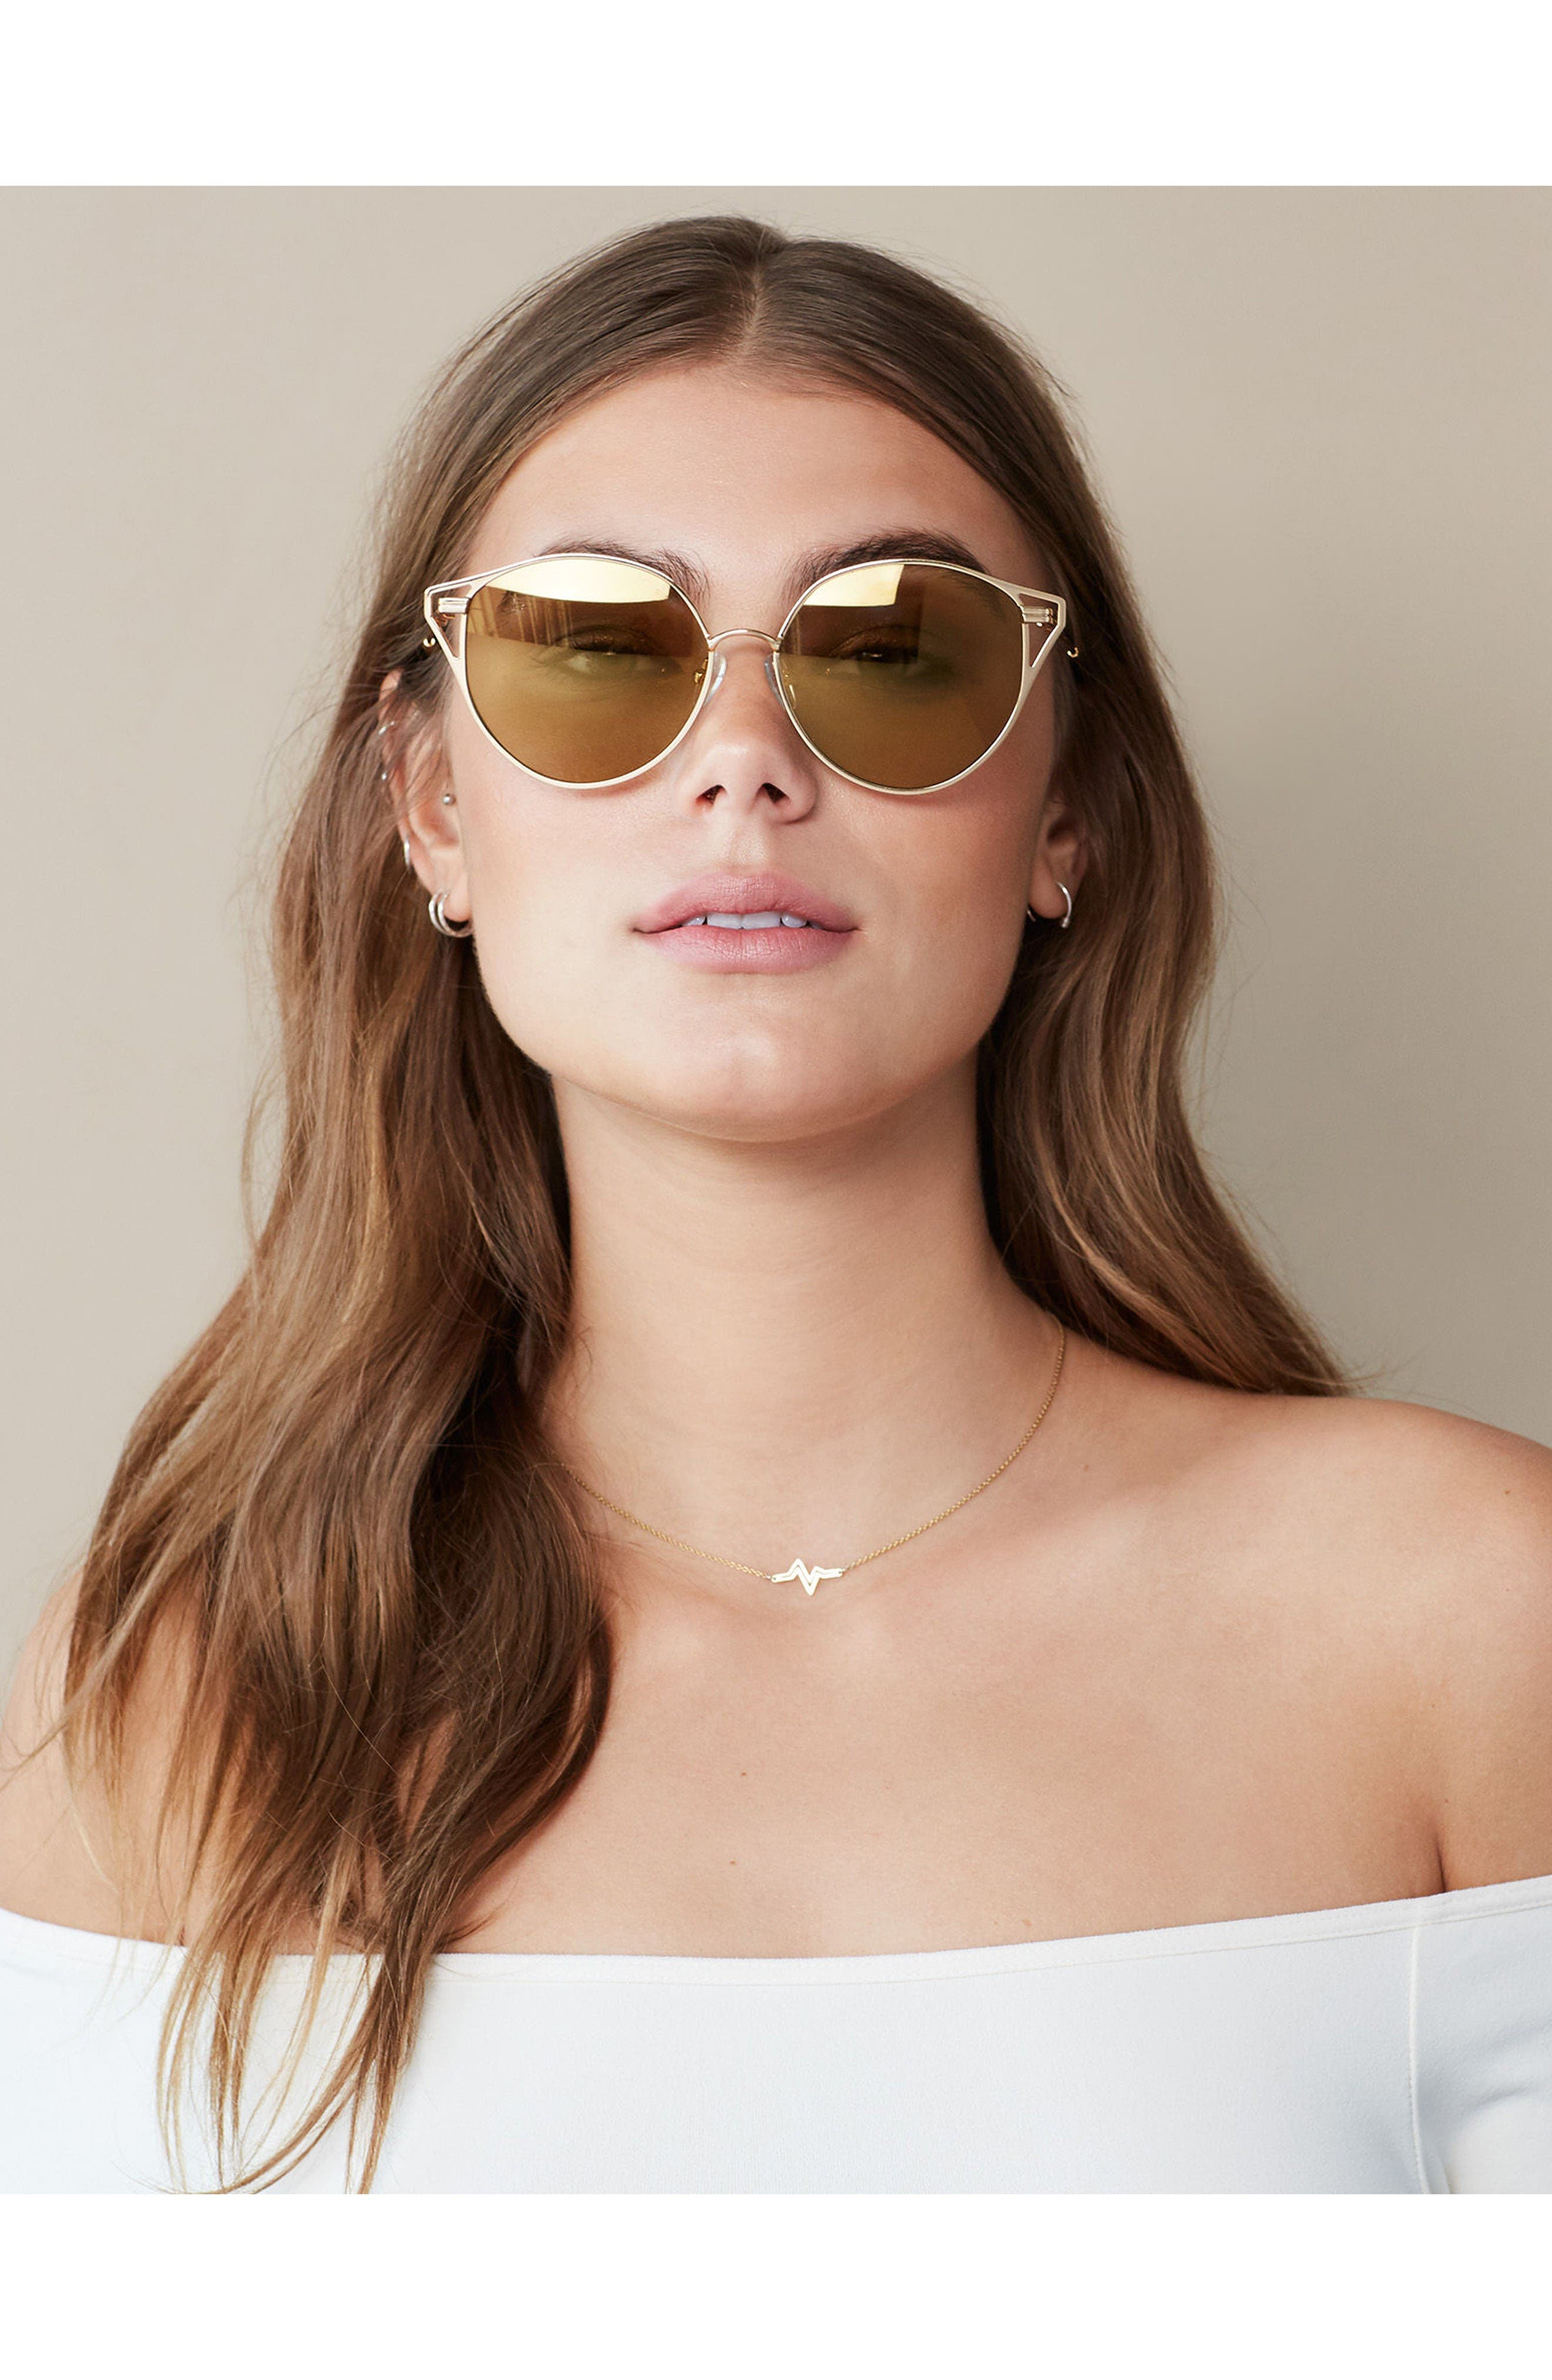 Ibiza 55mm Cat Eye Sunglasses,                             Alternate thumbnail 4, color,                             Gold Wire/ Amber Mirror